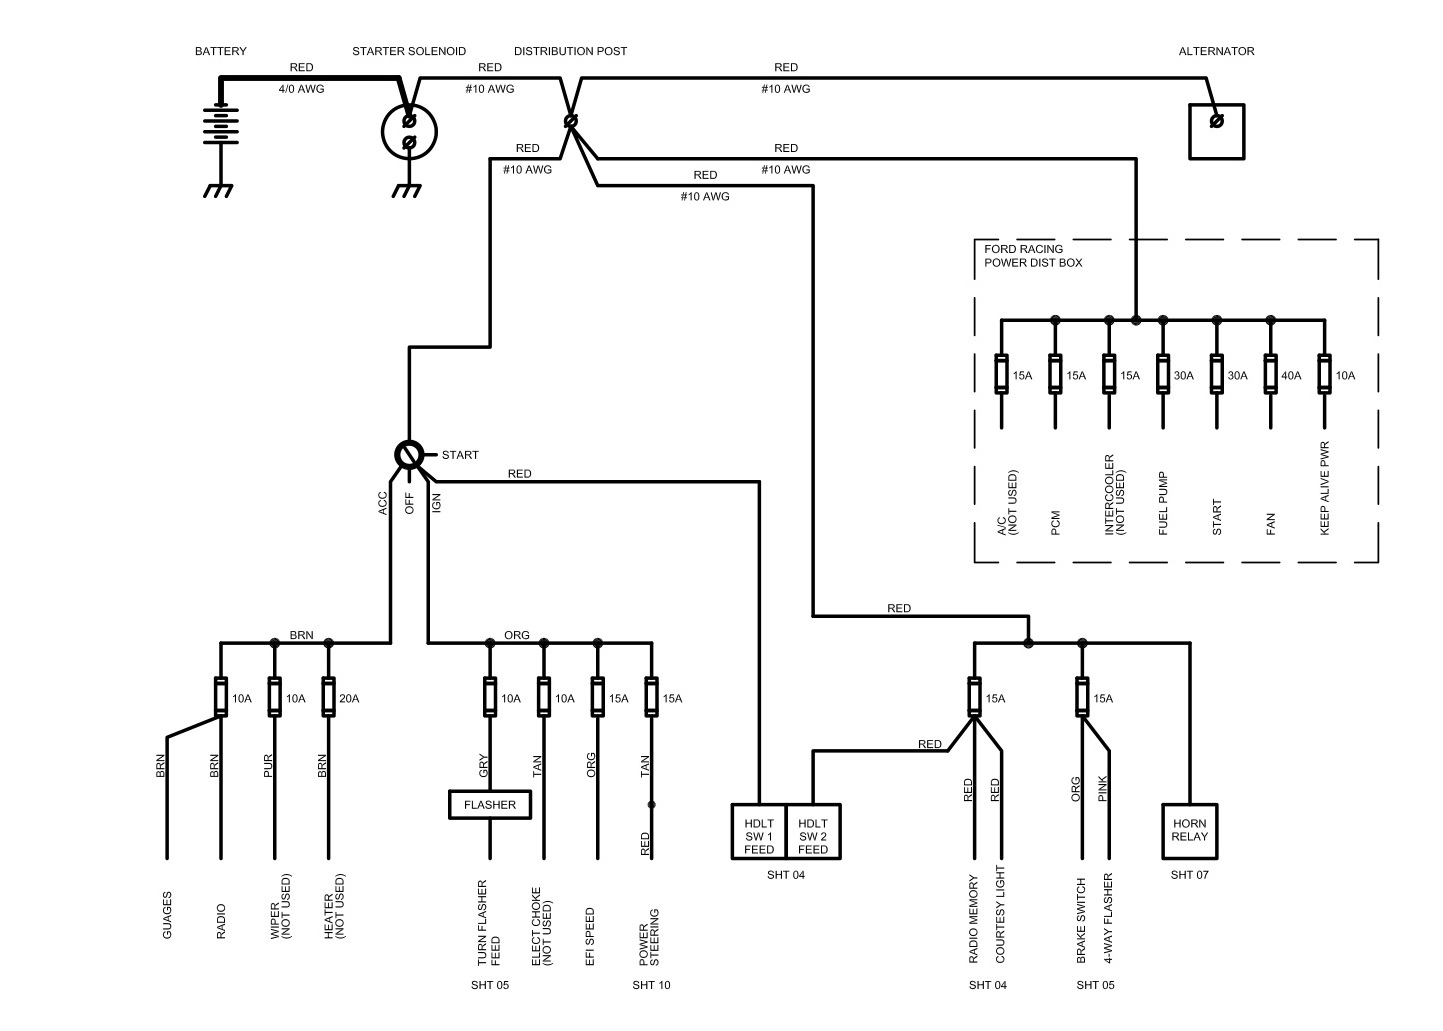 Ron Franics Gm Ignition Switch Wiring Diagram. Gm. Auto